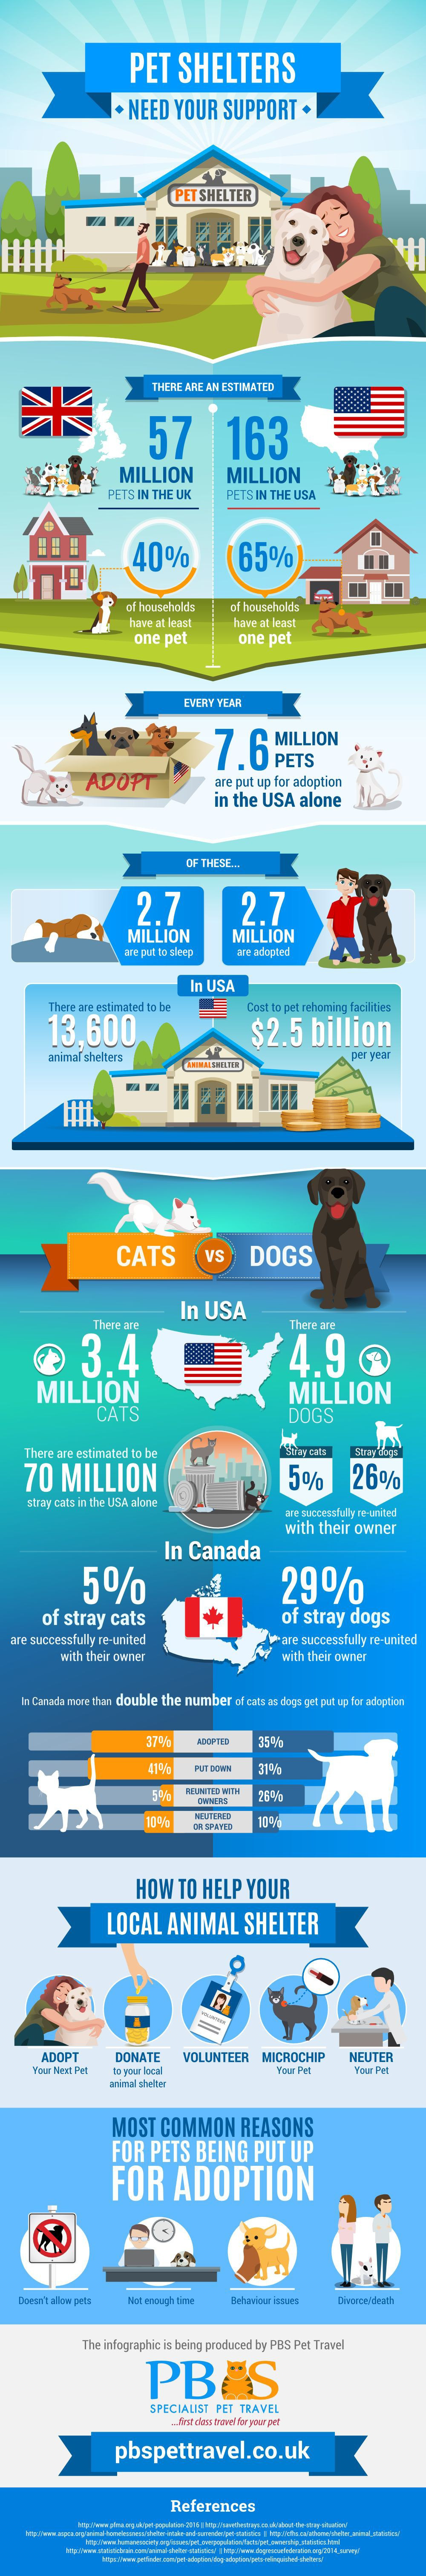 Fun Pet-Related Infographic Design Required